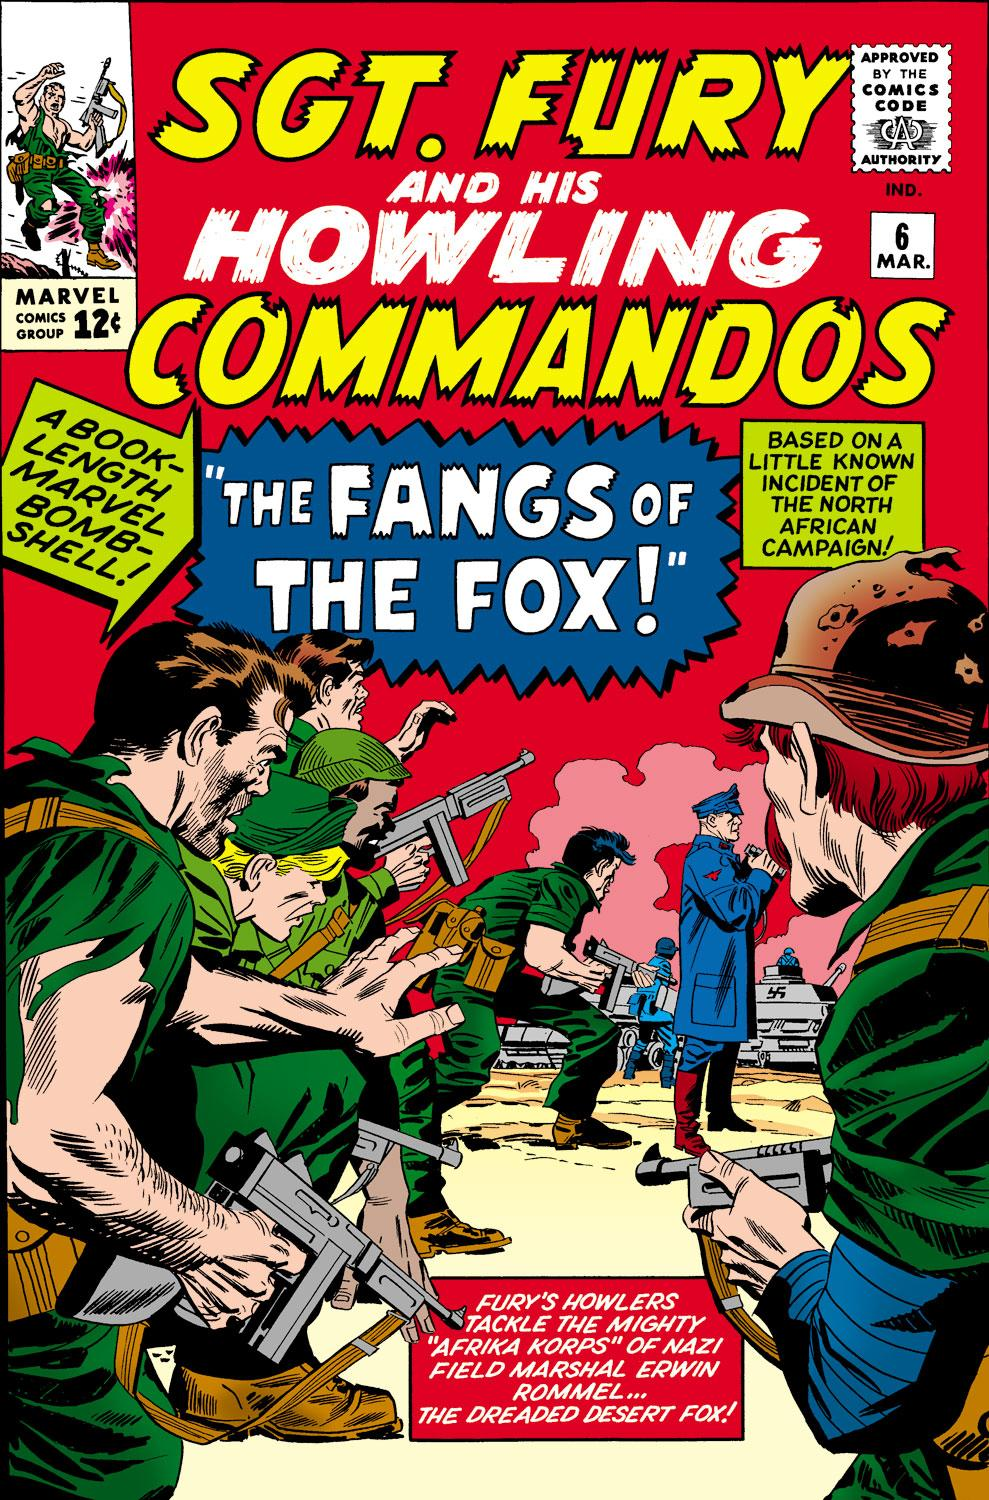 Sgt. Fury and His Howling Commandos (1963) #6